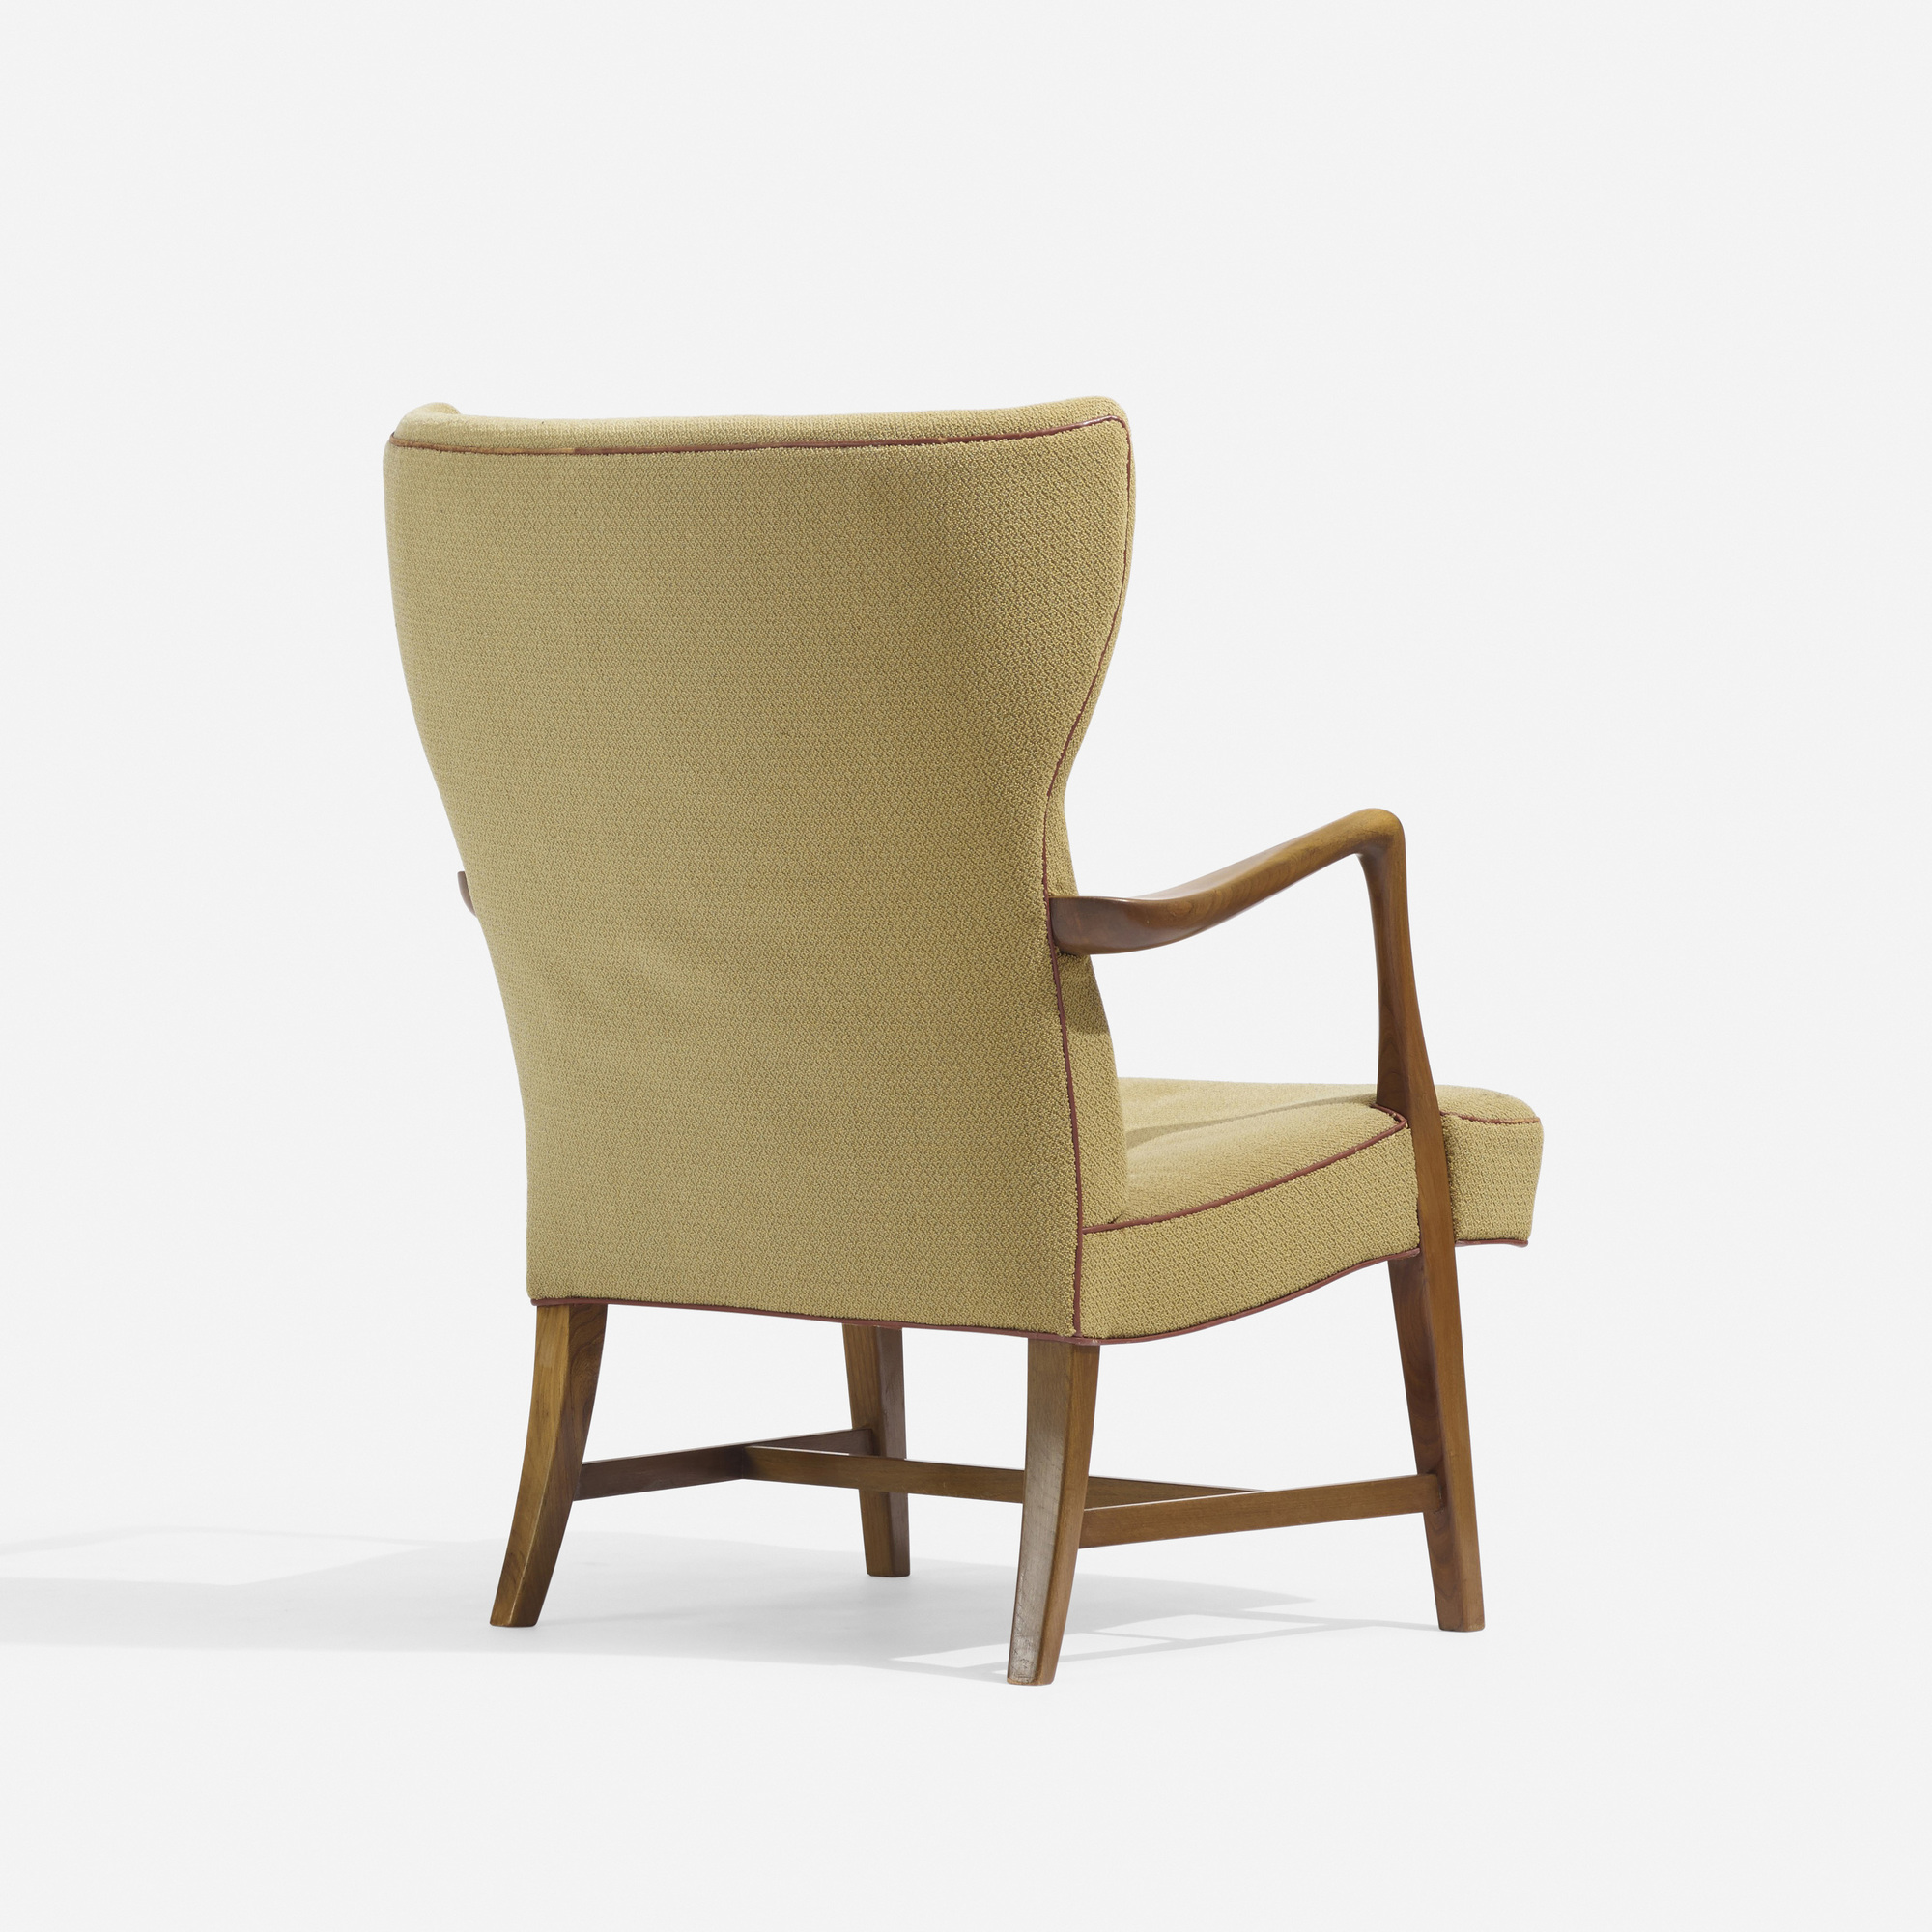 174: Peter Hvidt / lounge chair (2 of 3)